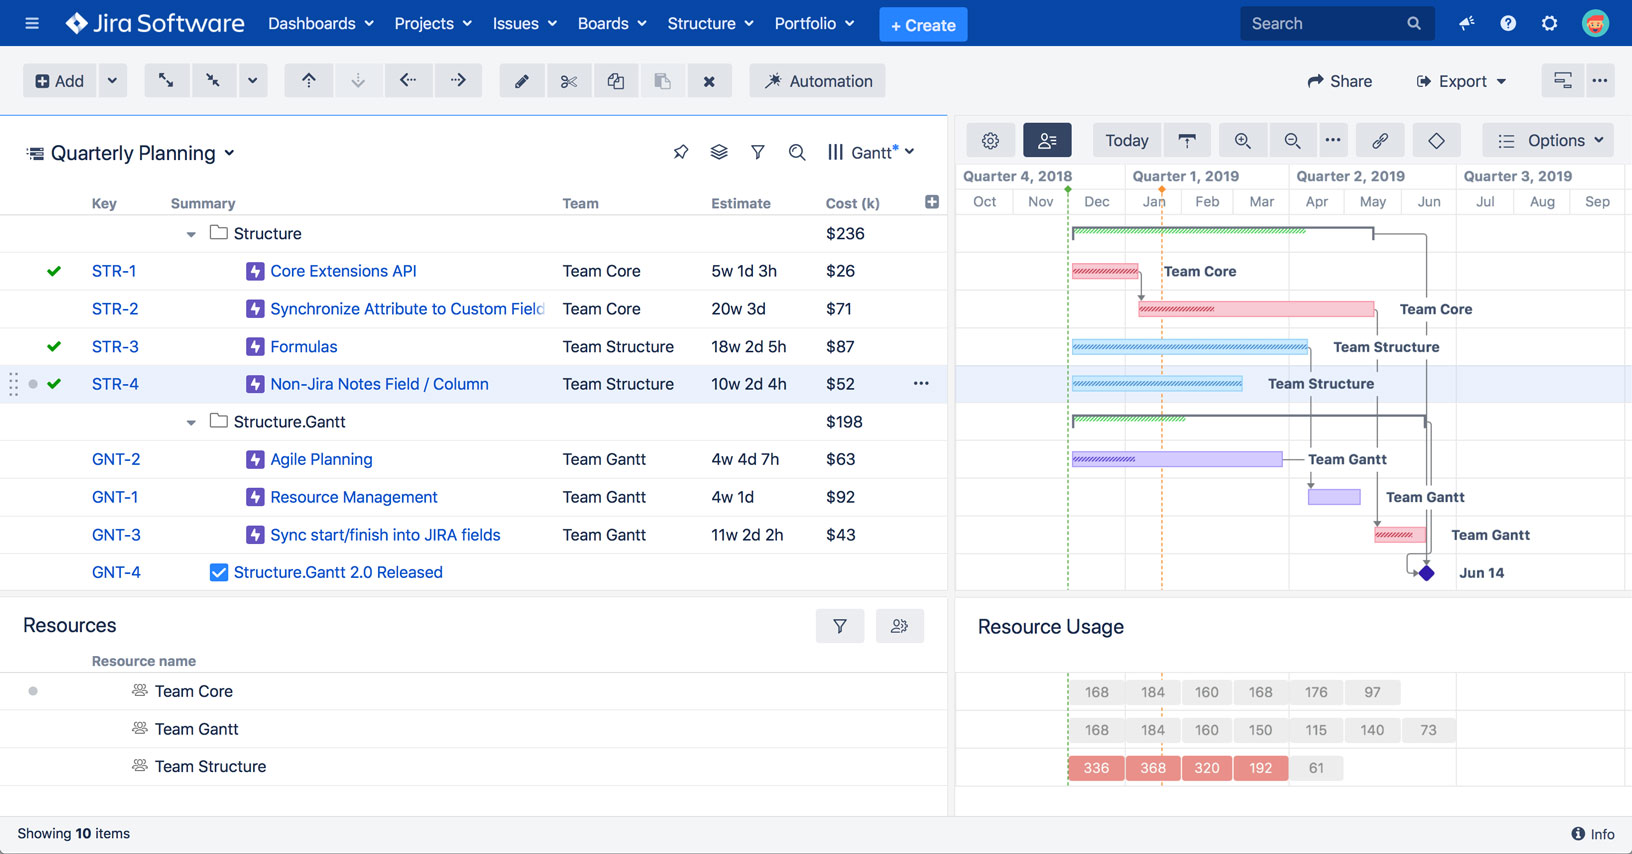 Structure and Structure.Gantt for Jira